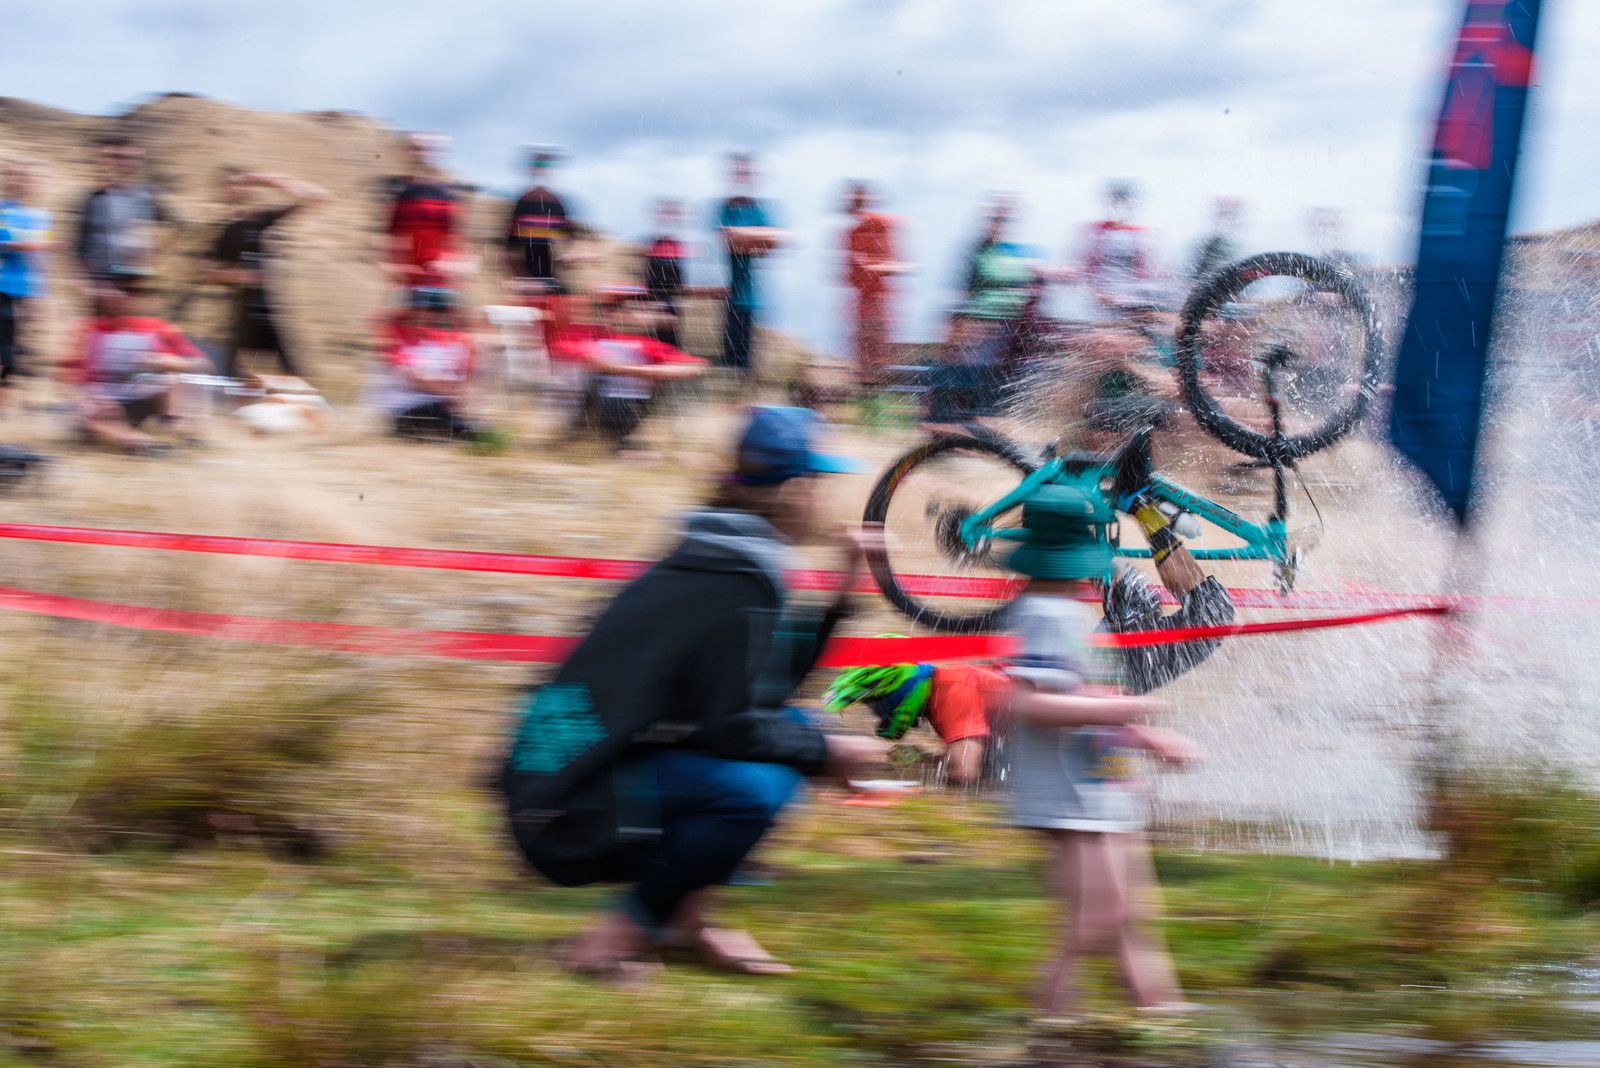 NZenduro19 day 3 DShaw-8964 - 2019 NZ Enduro Day 3 Photo Gallery - Mountain Biking Pictures - Vital MTB